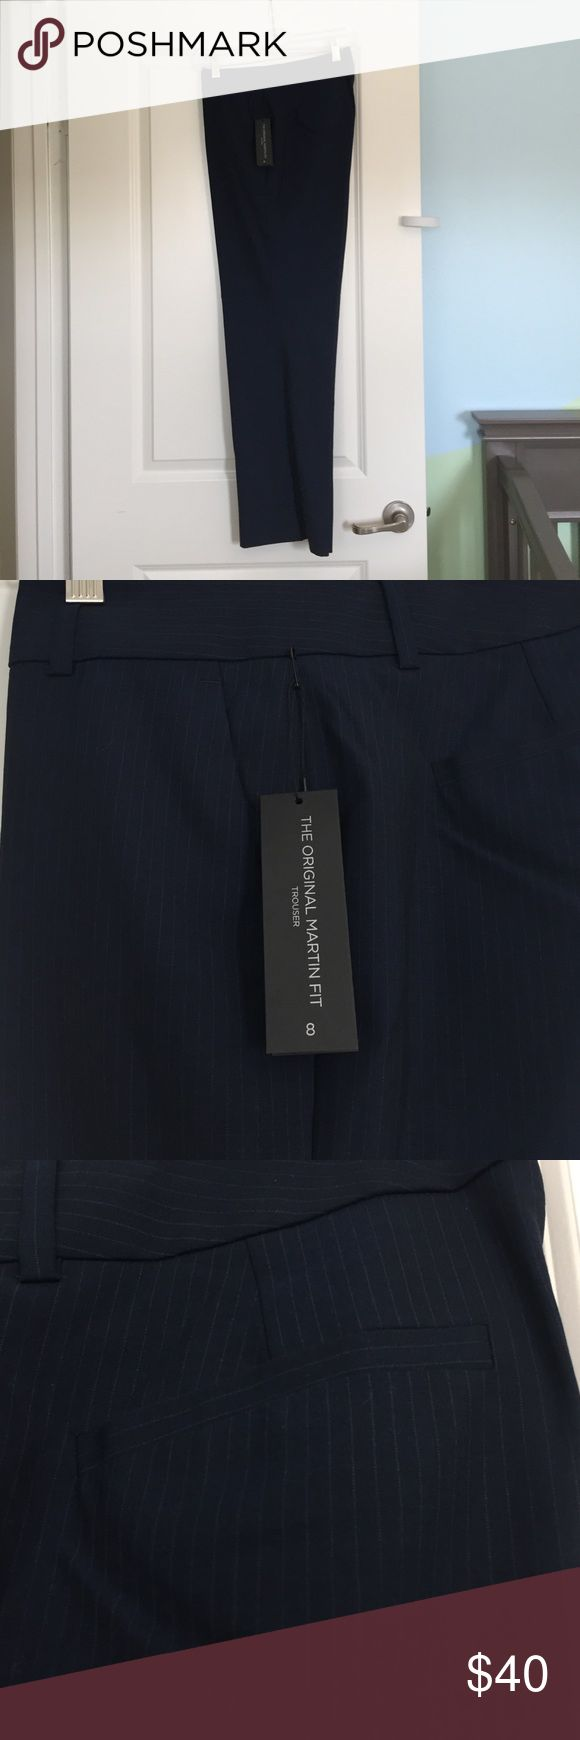 ⭐️NWT⭐️ Banana Republic Trouser Navy blue pinstripe trouser. Grey pinstripe. Original Martin Trouser. Banana Republic Pants Trousers